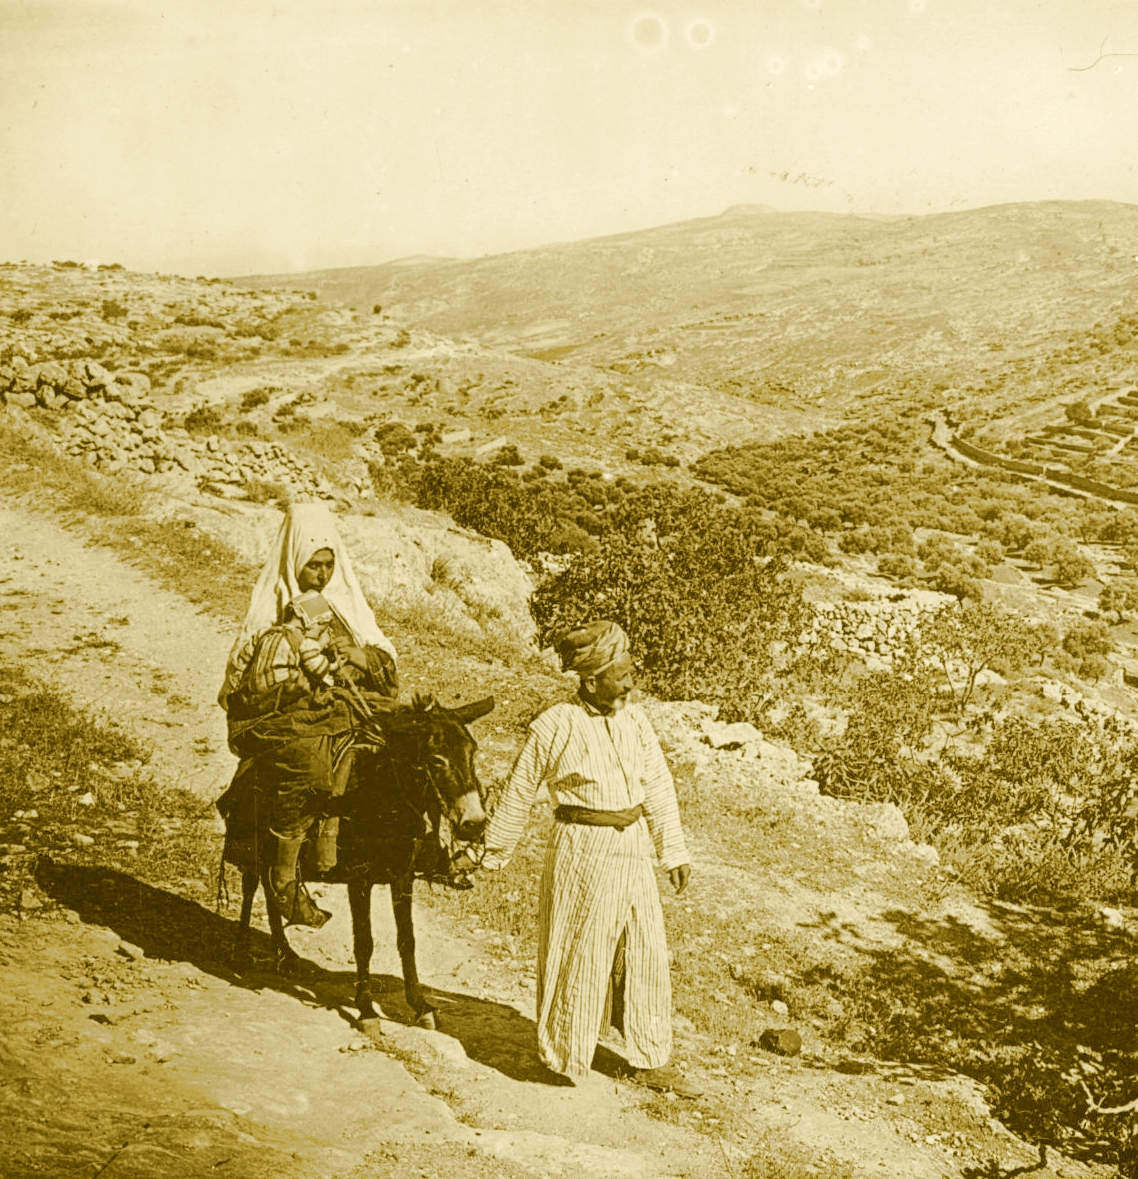 Bethlehem - بيت لحم : Women of Bethlehem 144 (late 19th, early 20th c.) - On a country road (Per Reem Ackall)